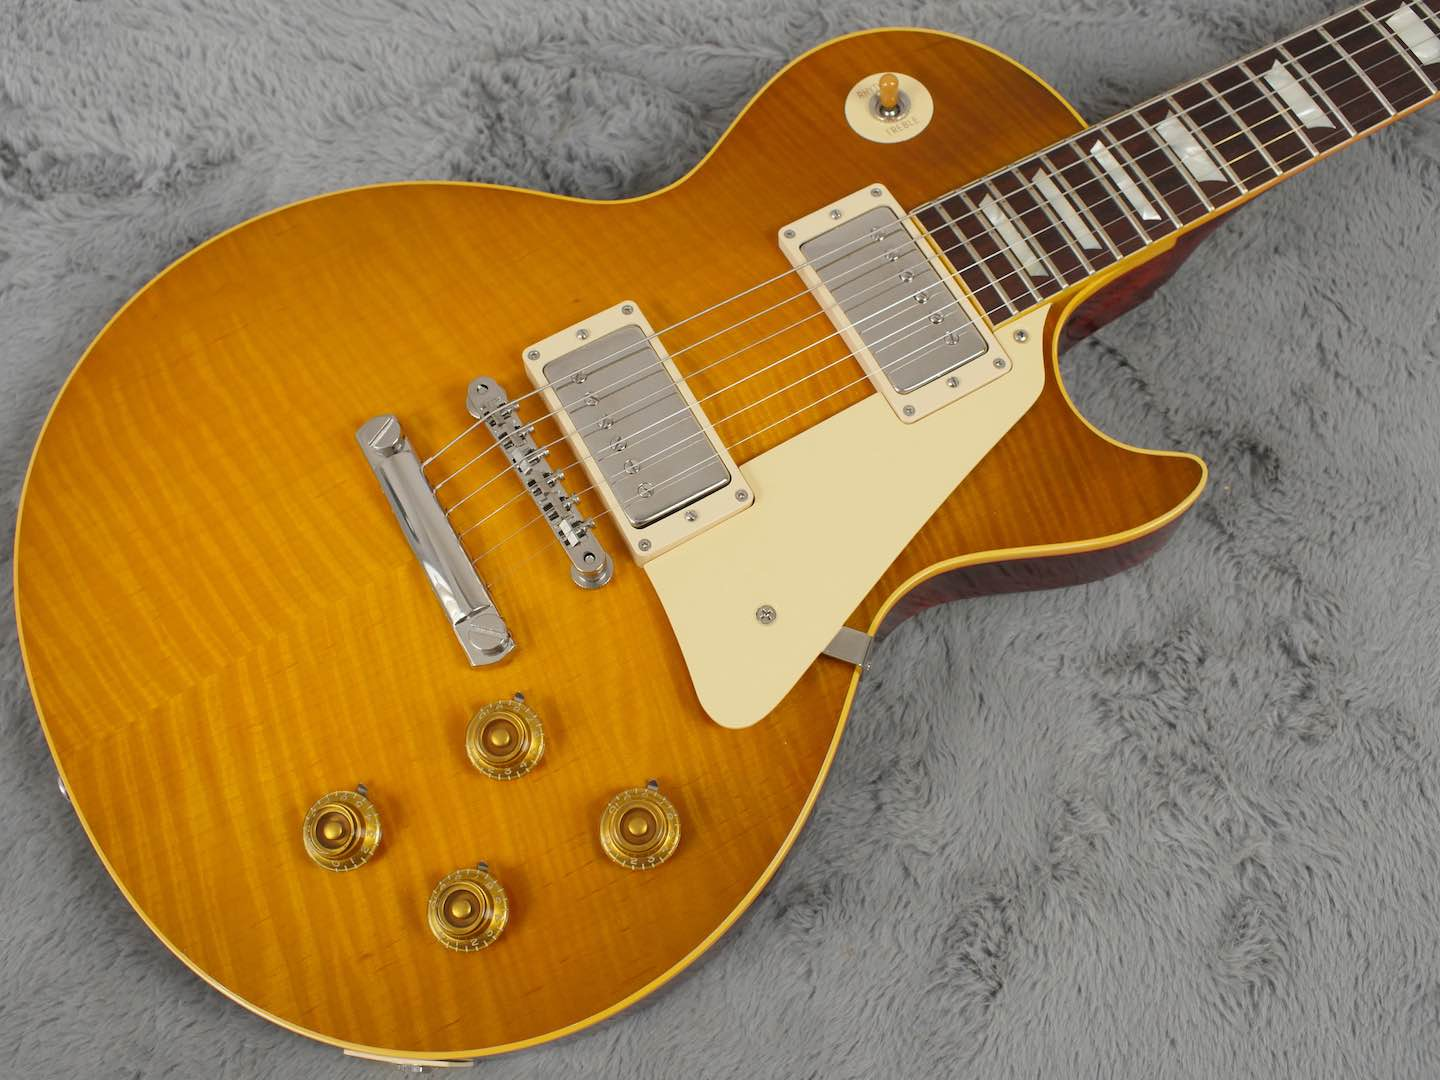 2015 Gibson True Historic Les Paul Ace Frehley '59 'Burst Vintage Gloss